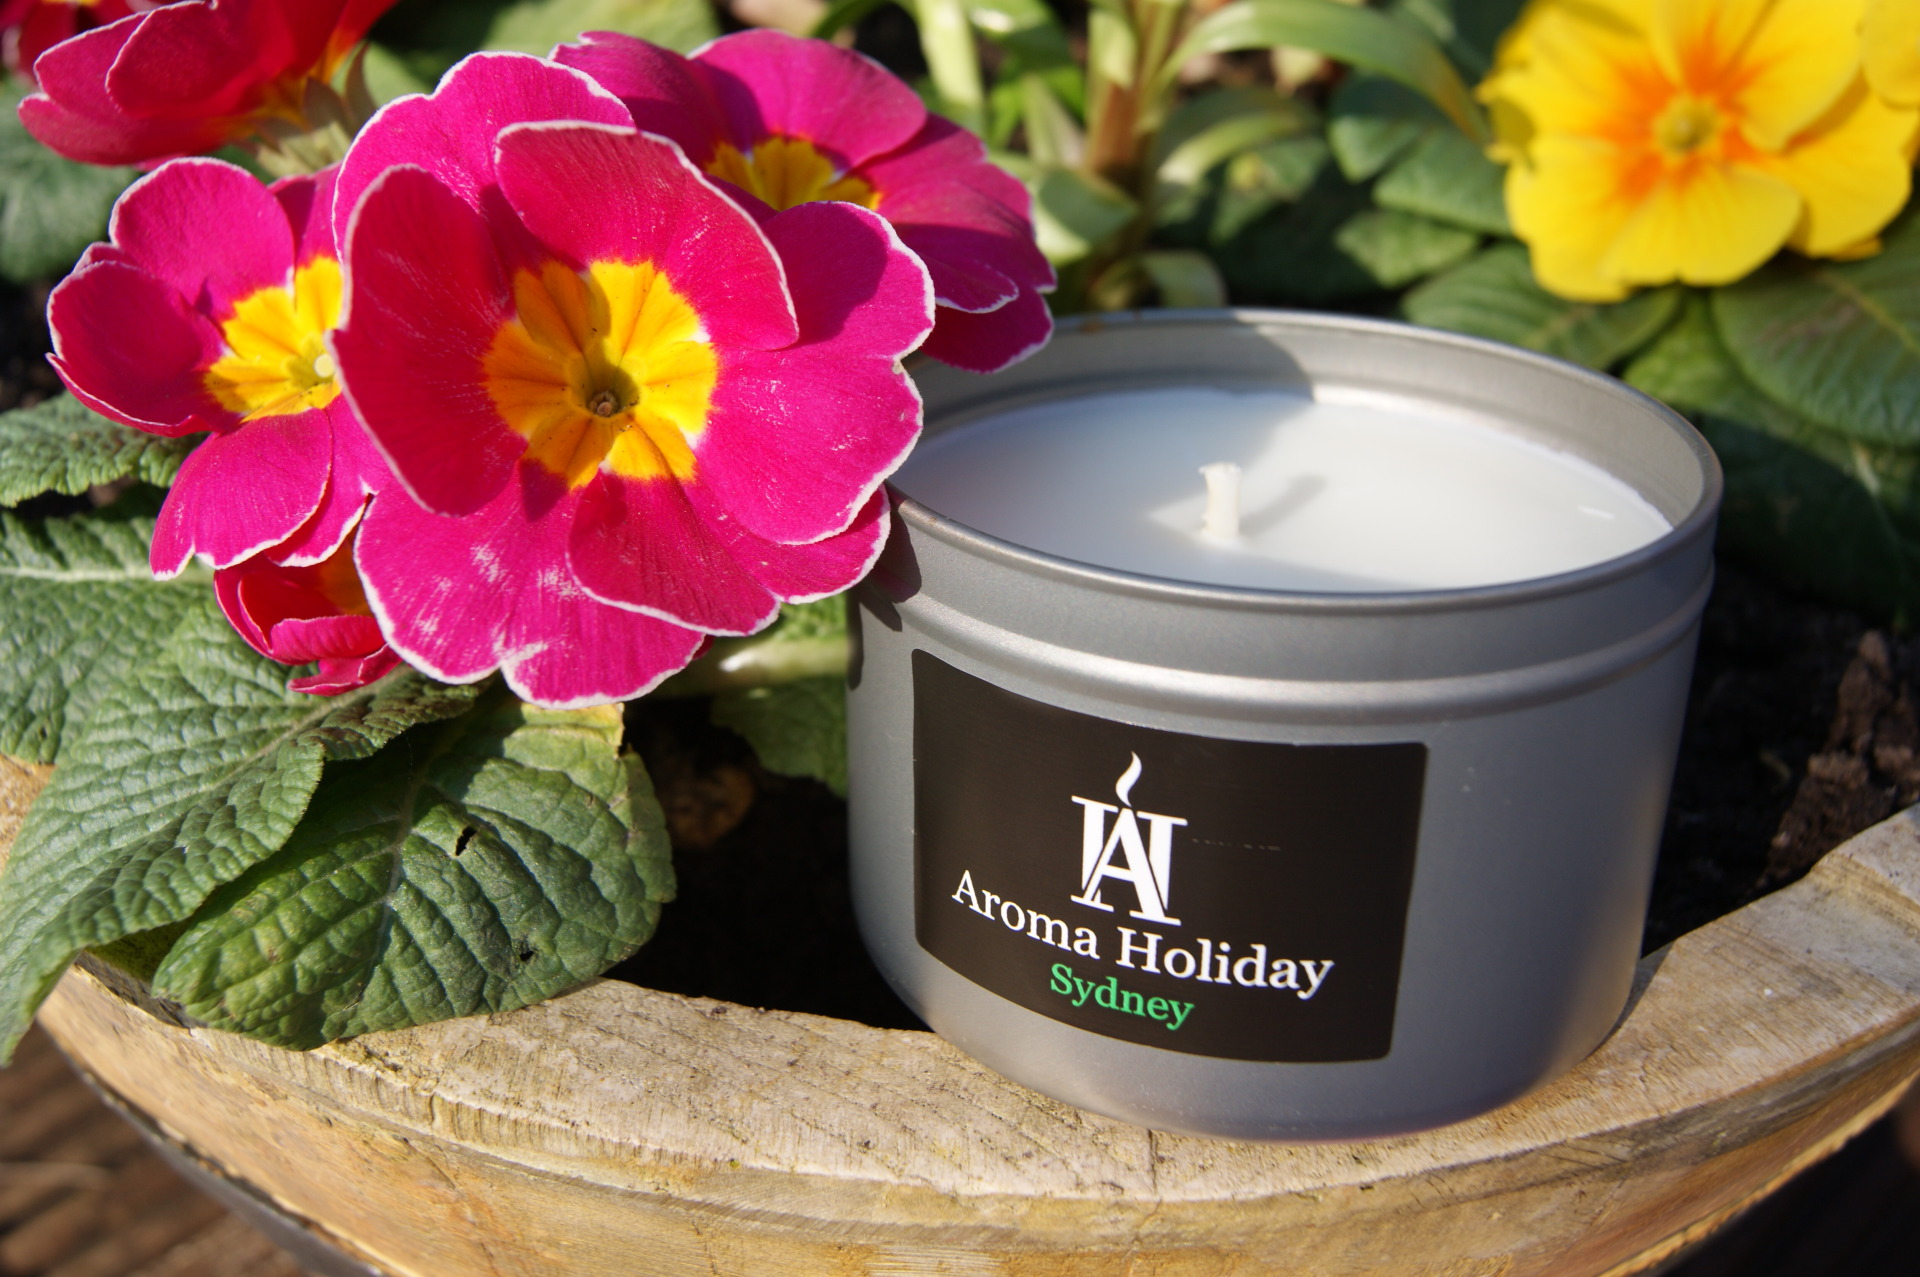 Aroma Holiday Candles